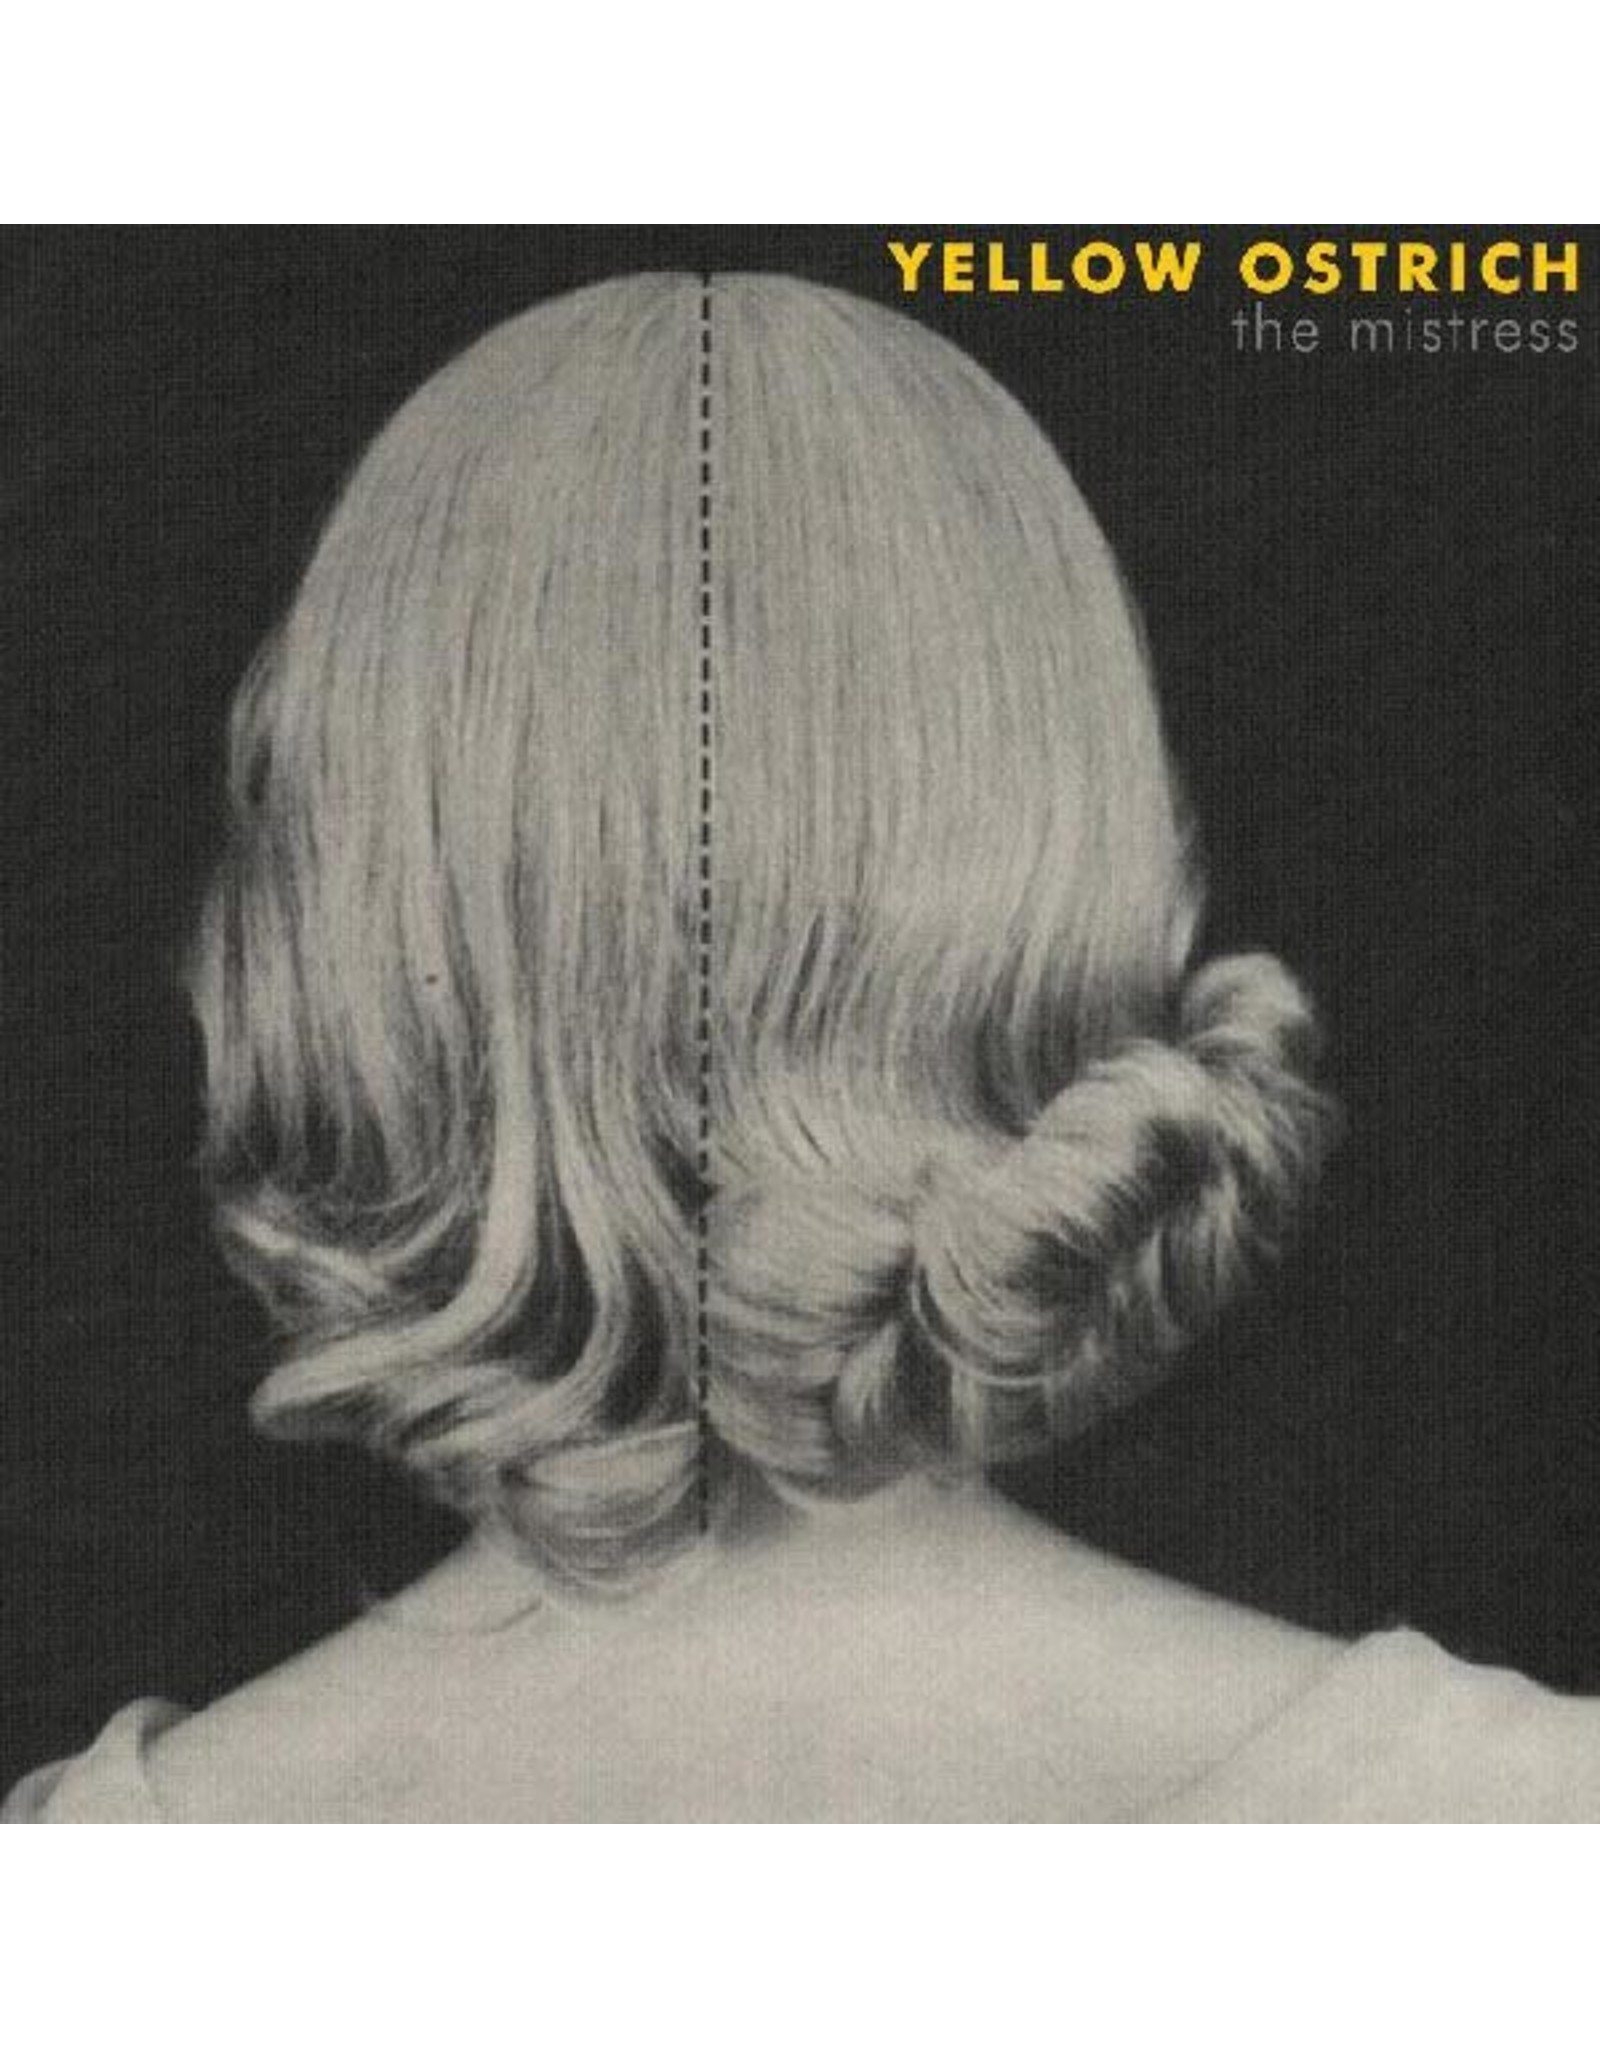 New Vinyl Yellow Ostrich - The Mistress (Deluxe, 10th Anniversary, Colored) LP)